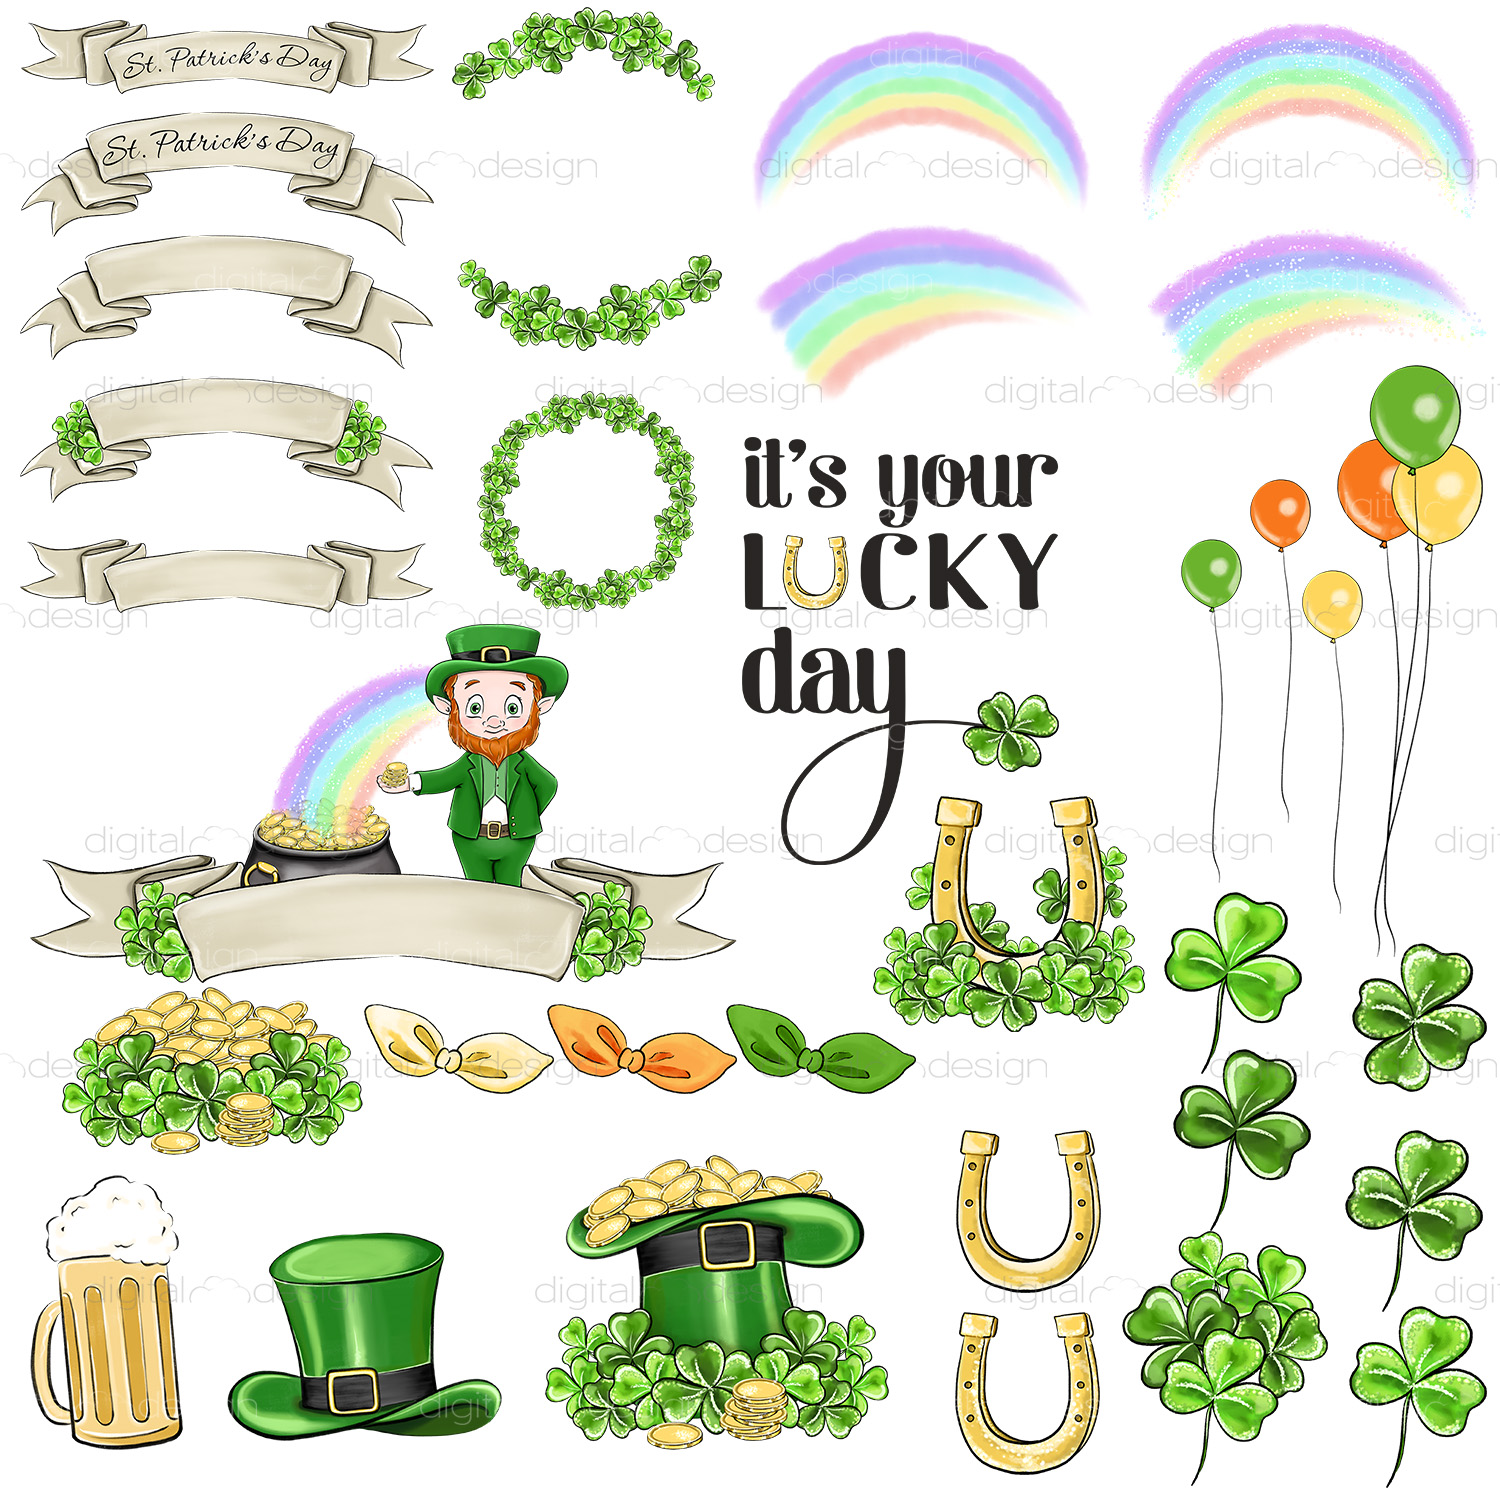 Its Your Lucky Day - Clipart example image 4